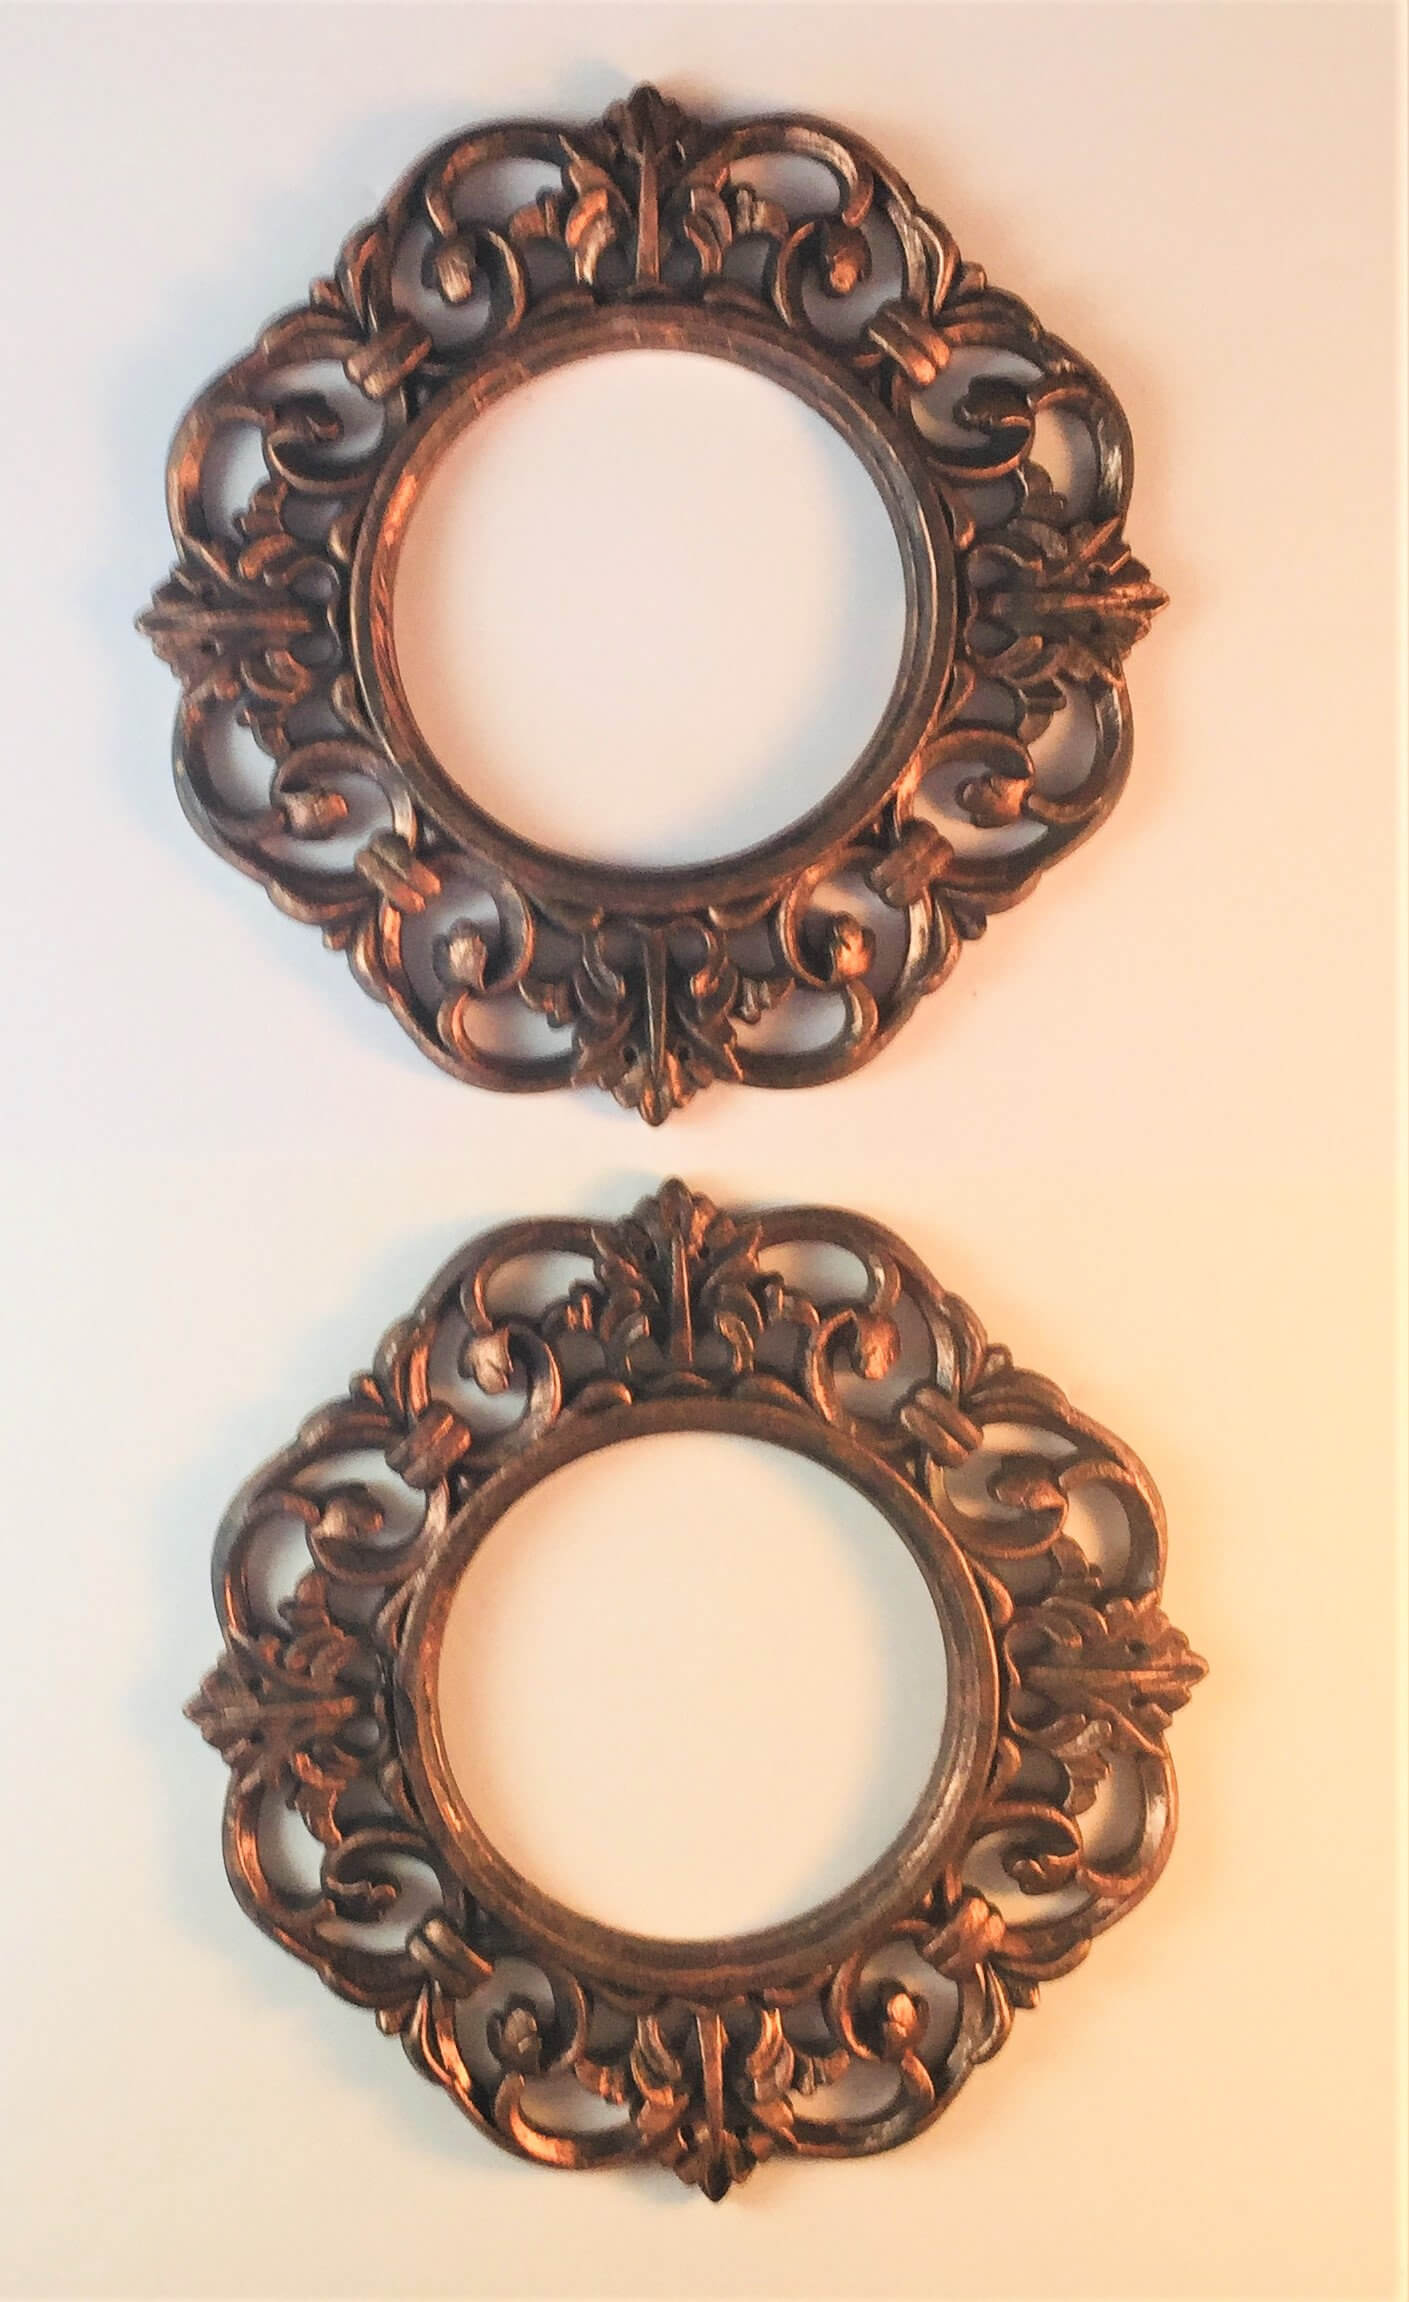 Bronze Picture Frames with Ornate Designs